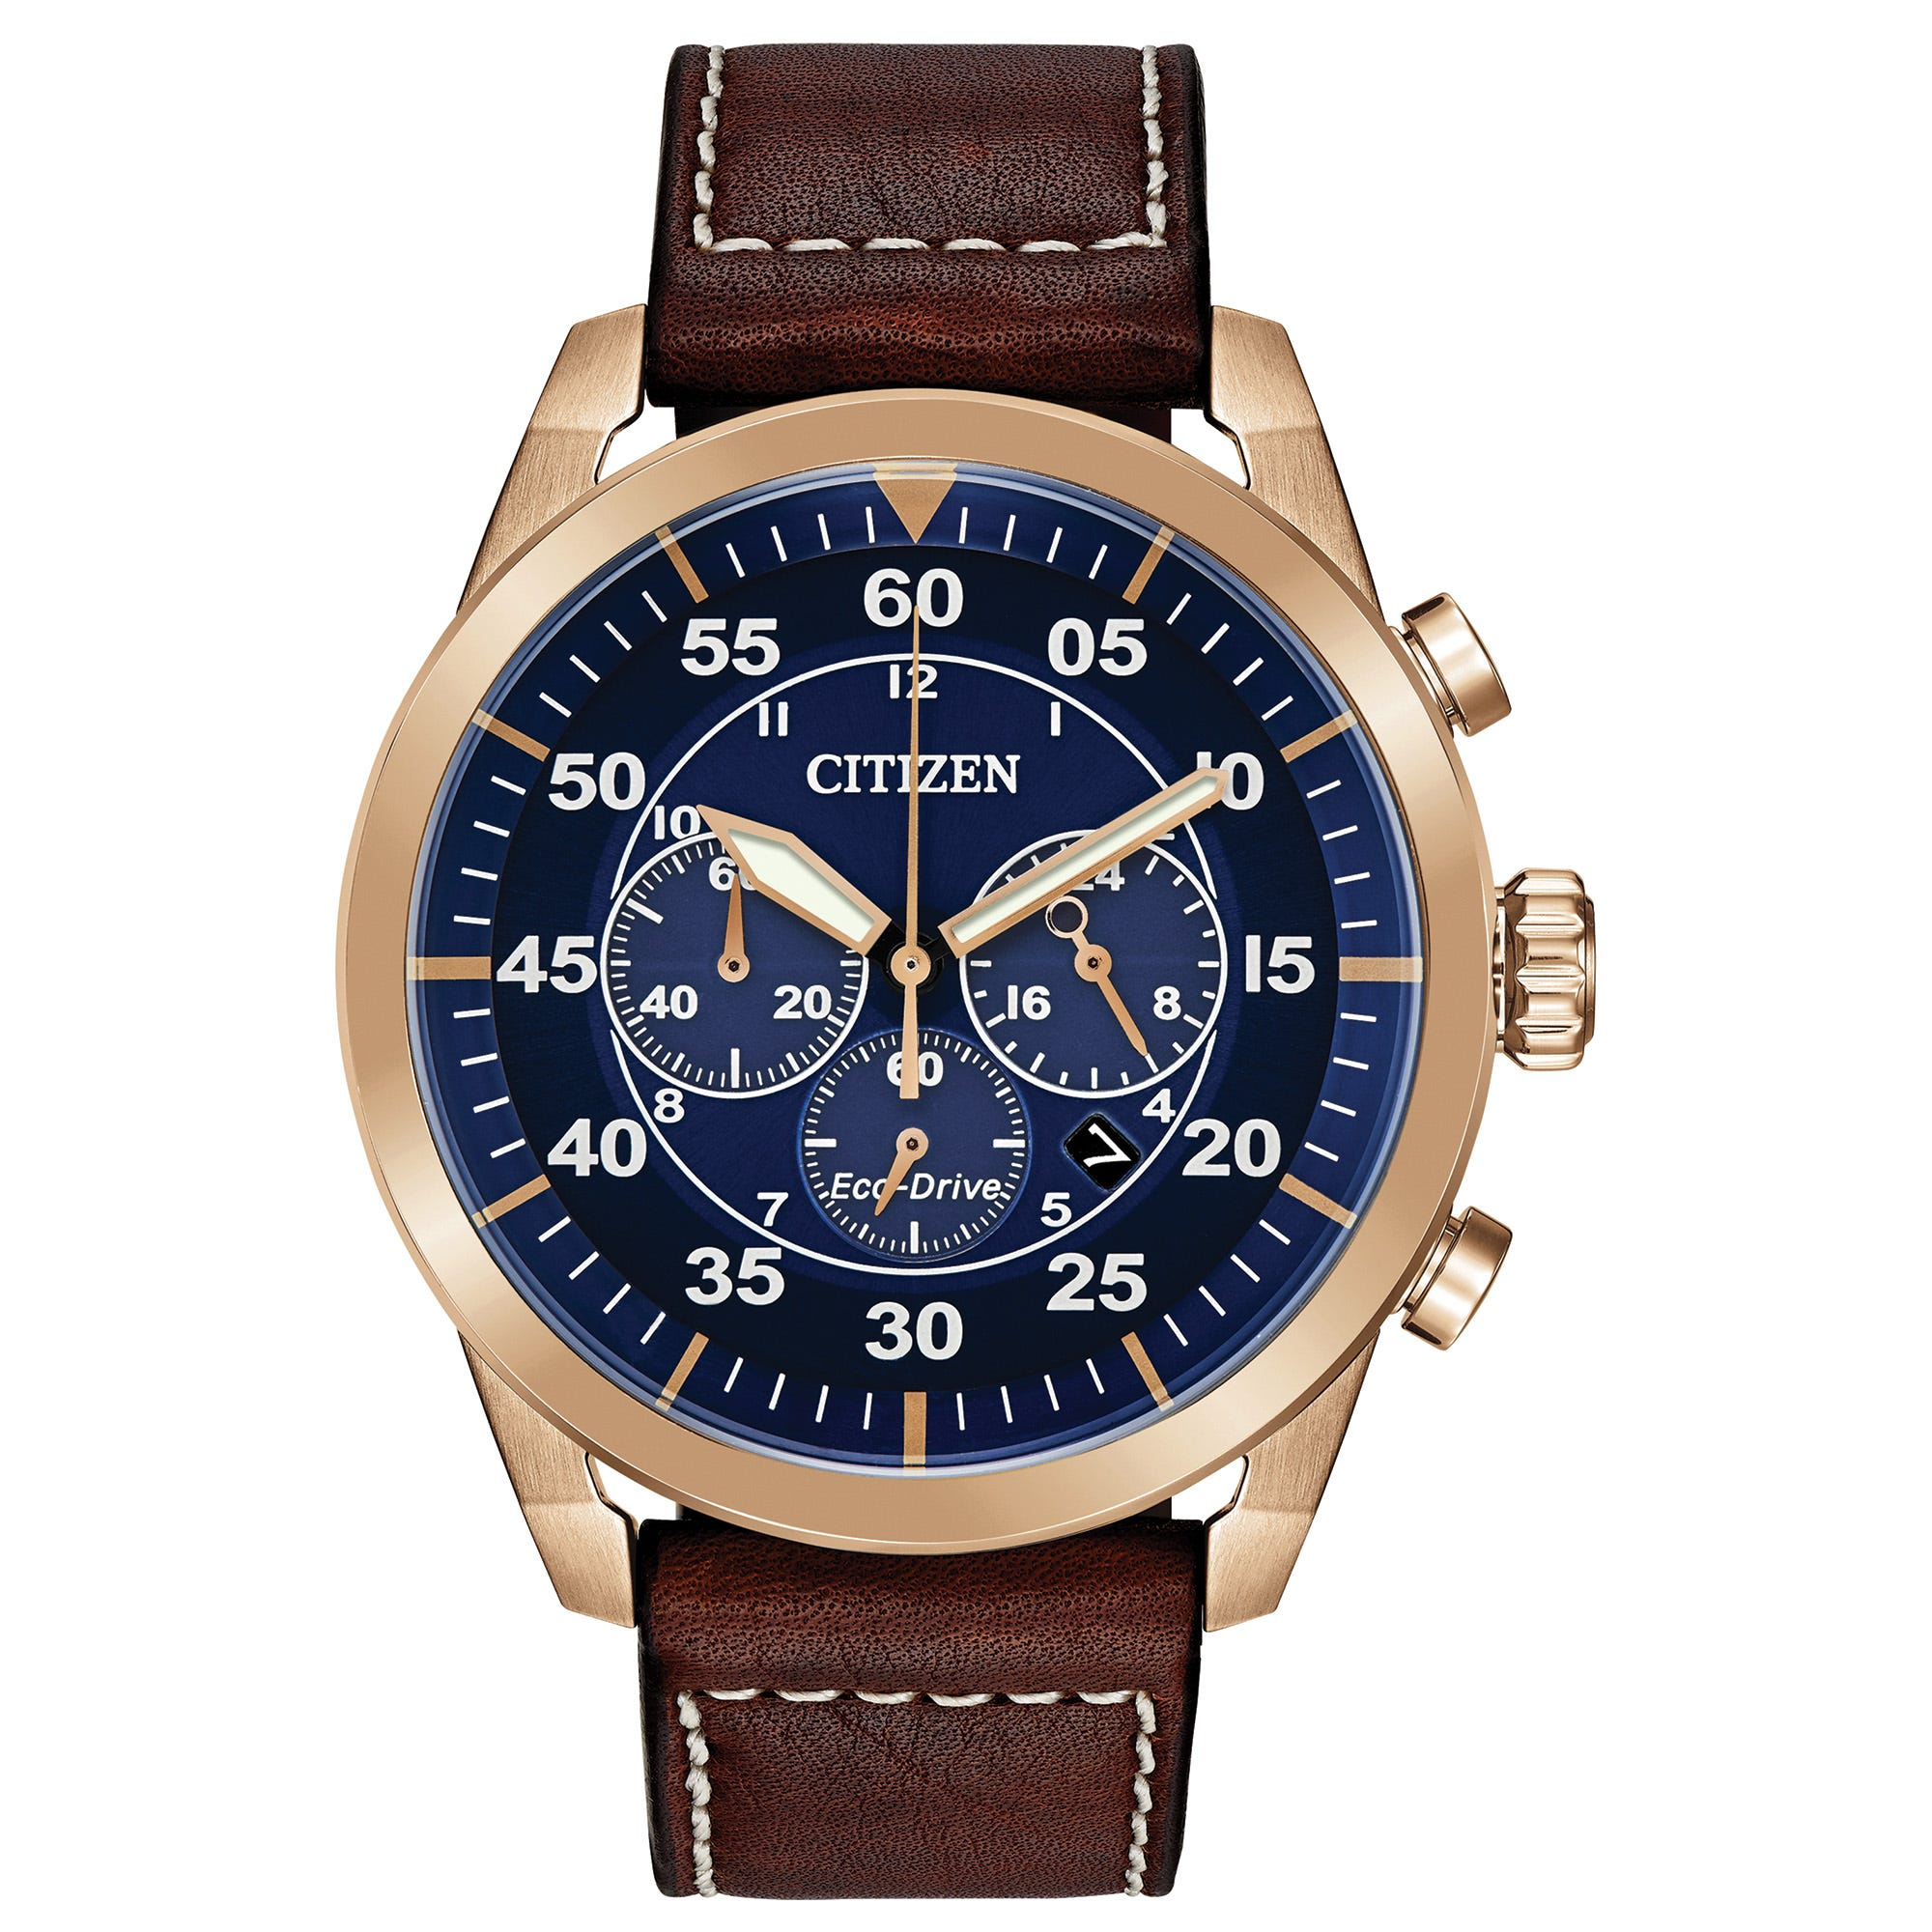 Citizen Men's Avion Watch